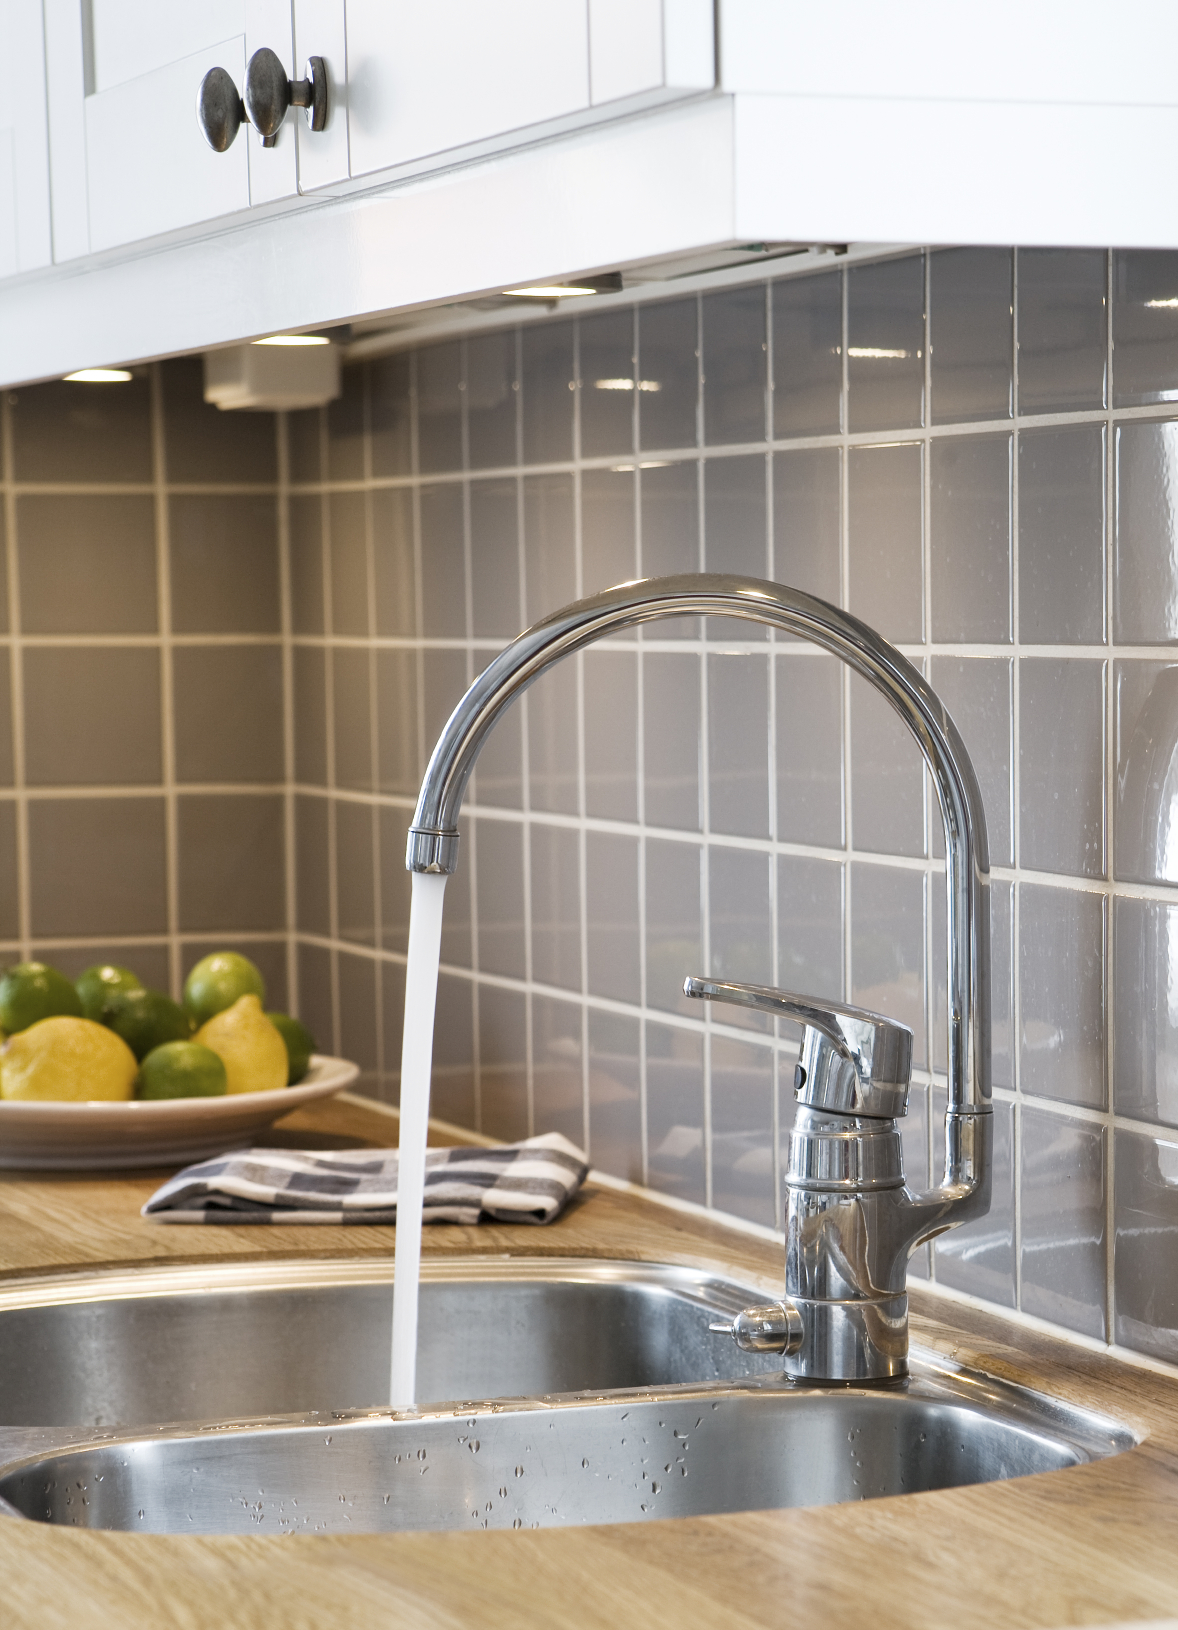 Kitchen Sink Types And Uses Surdus Remodeling